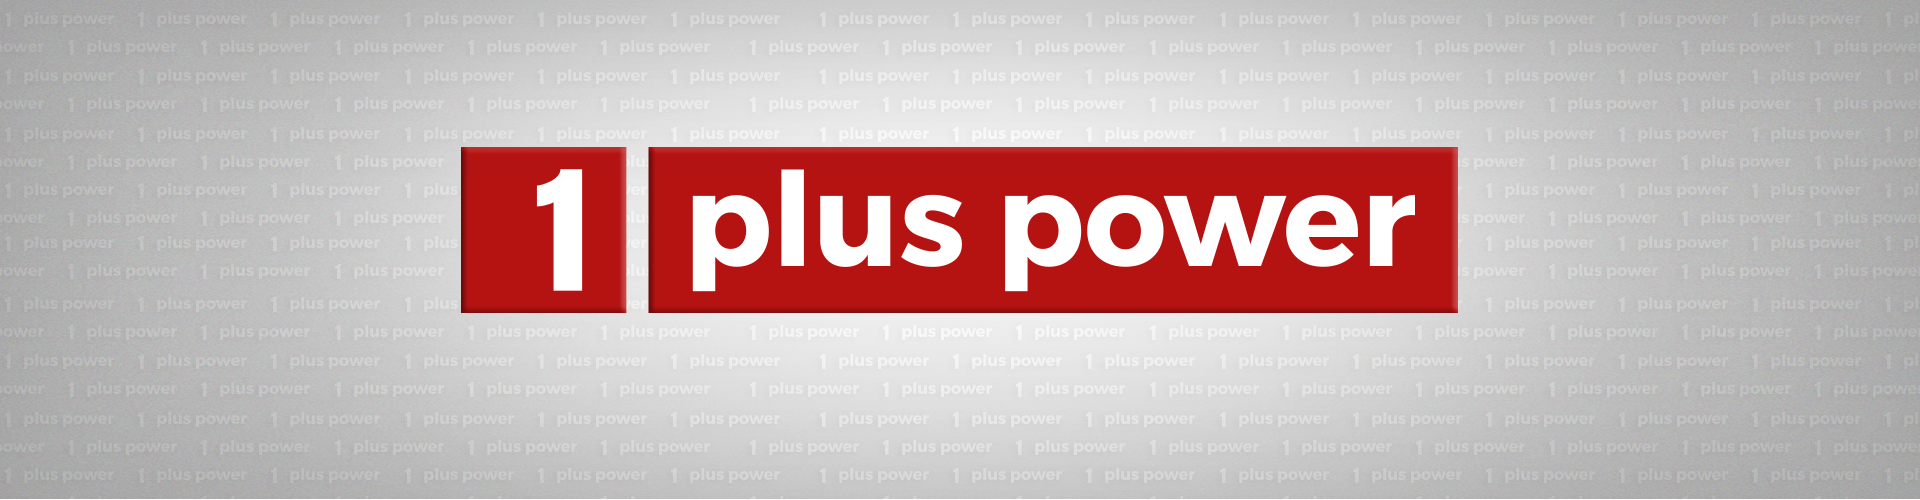 1 plus power Banner Logo composing keyvisual